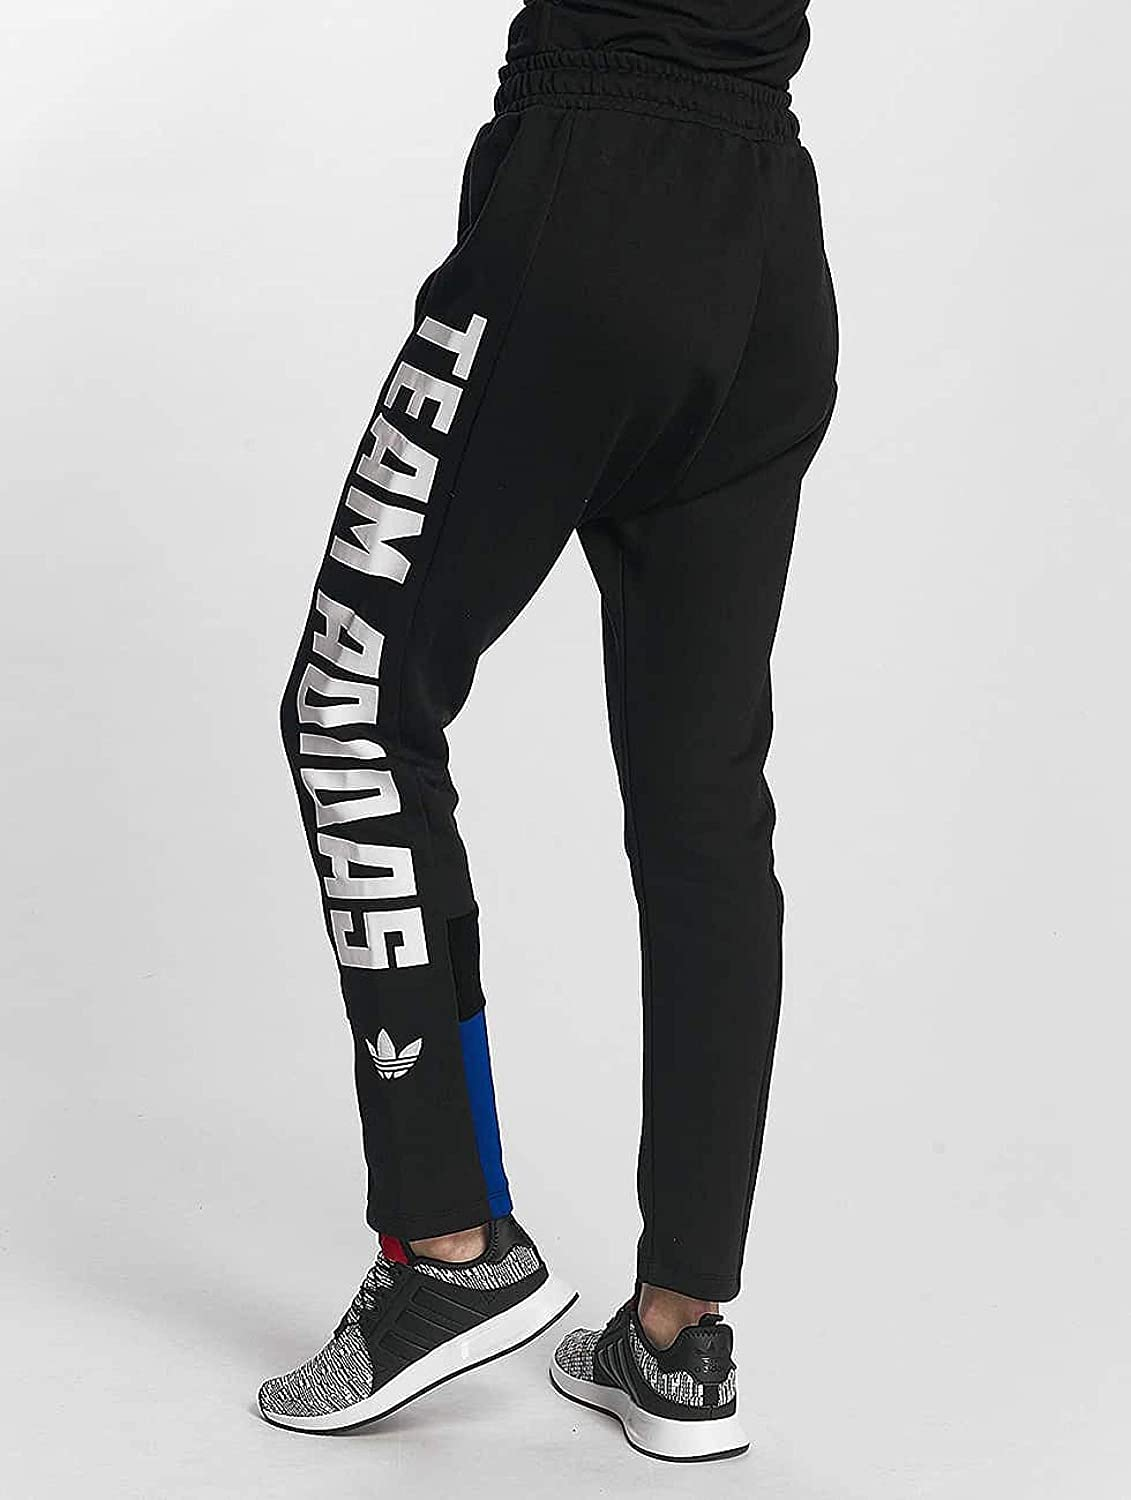 quality design 28b5b dfa8f Survêtement Tp Adidas Pantalon Vêtements De W Et Archive vSX